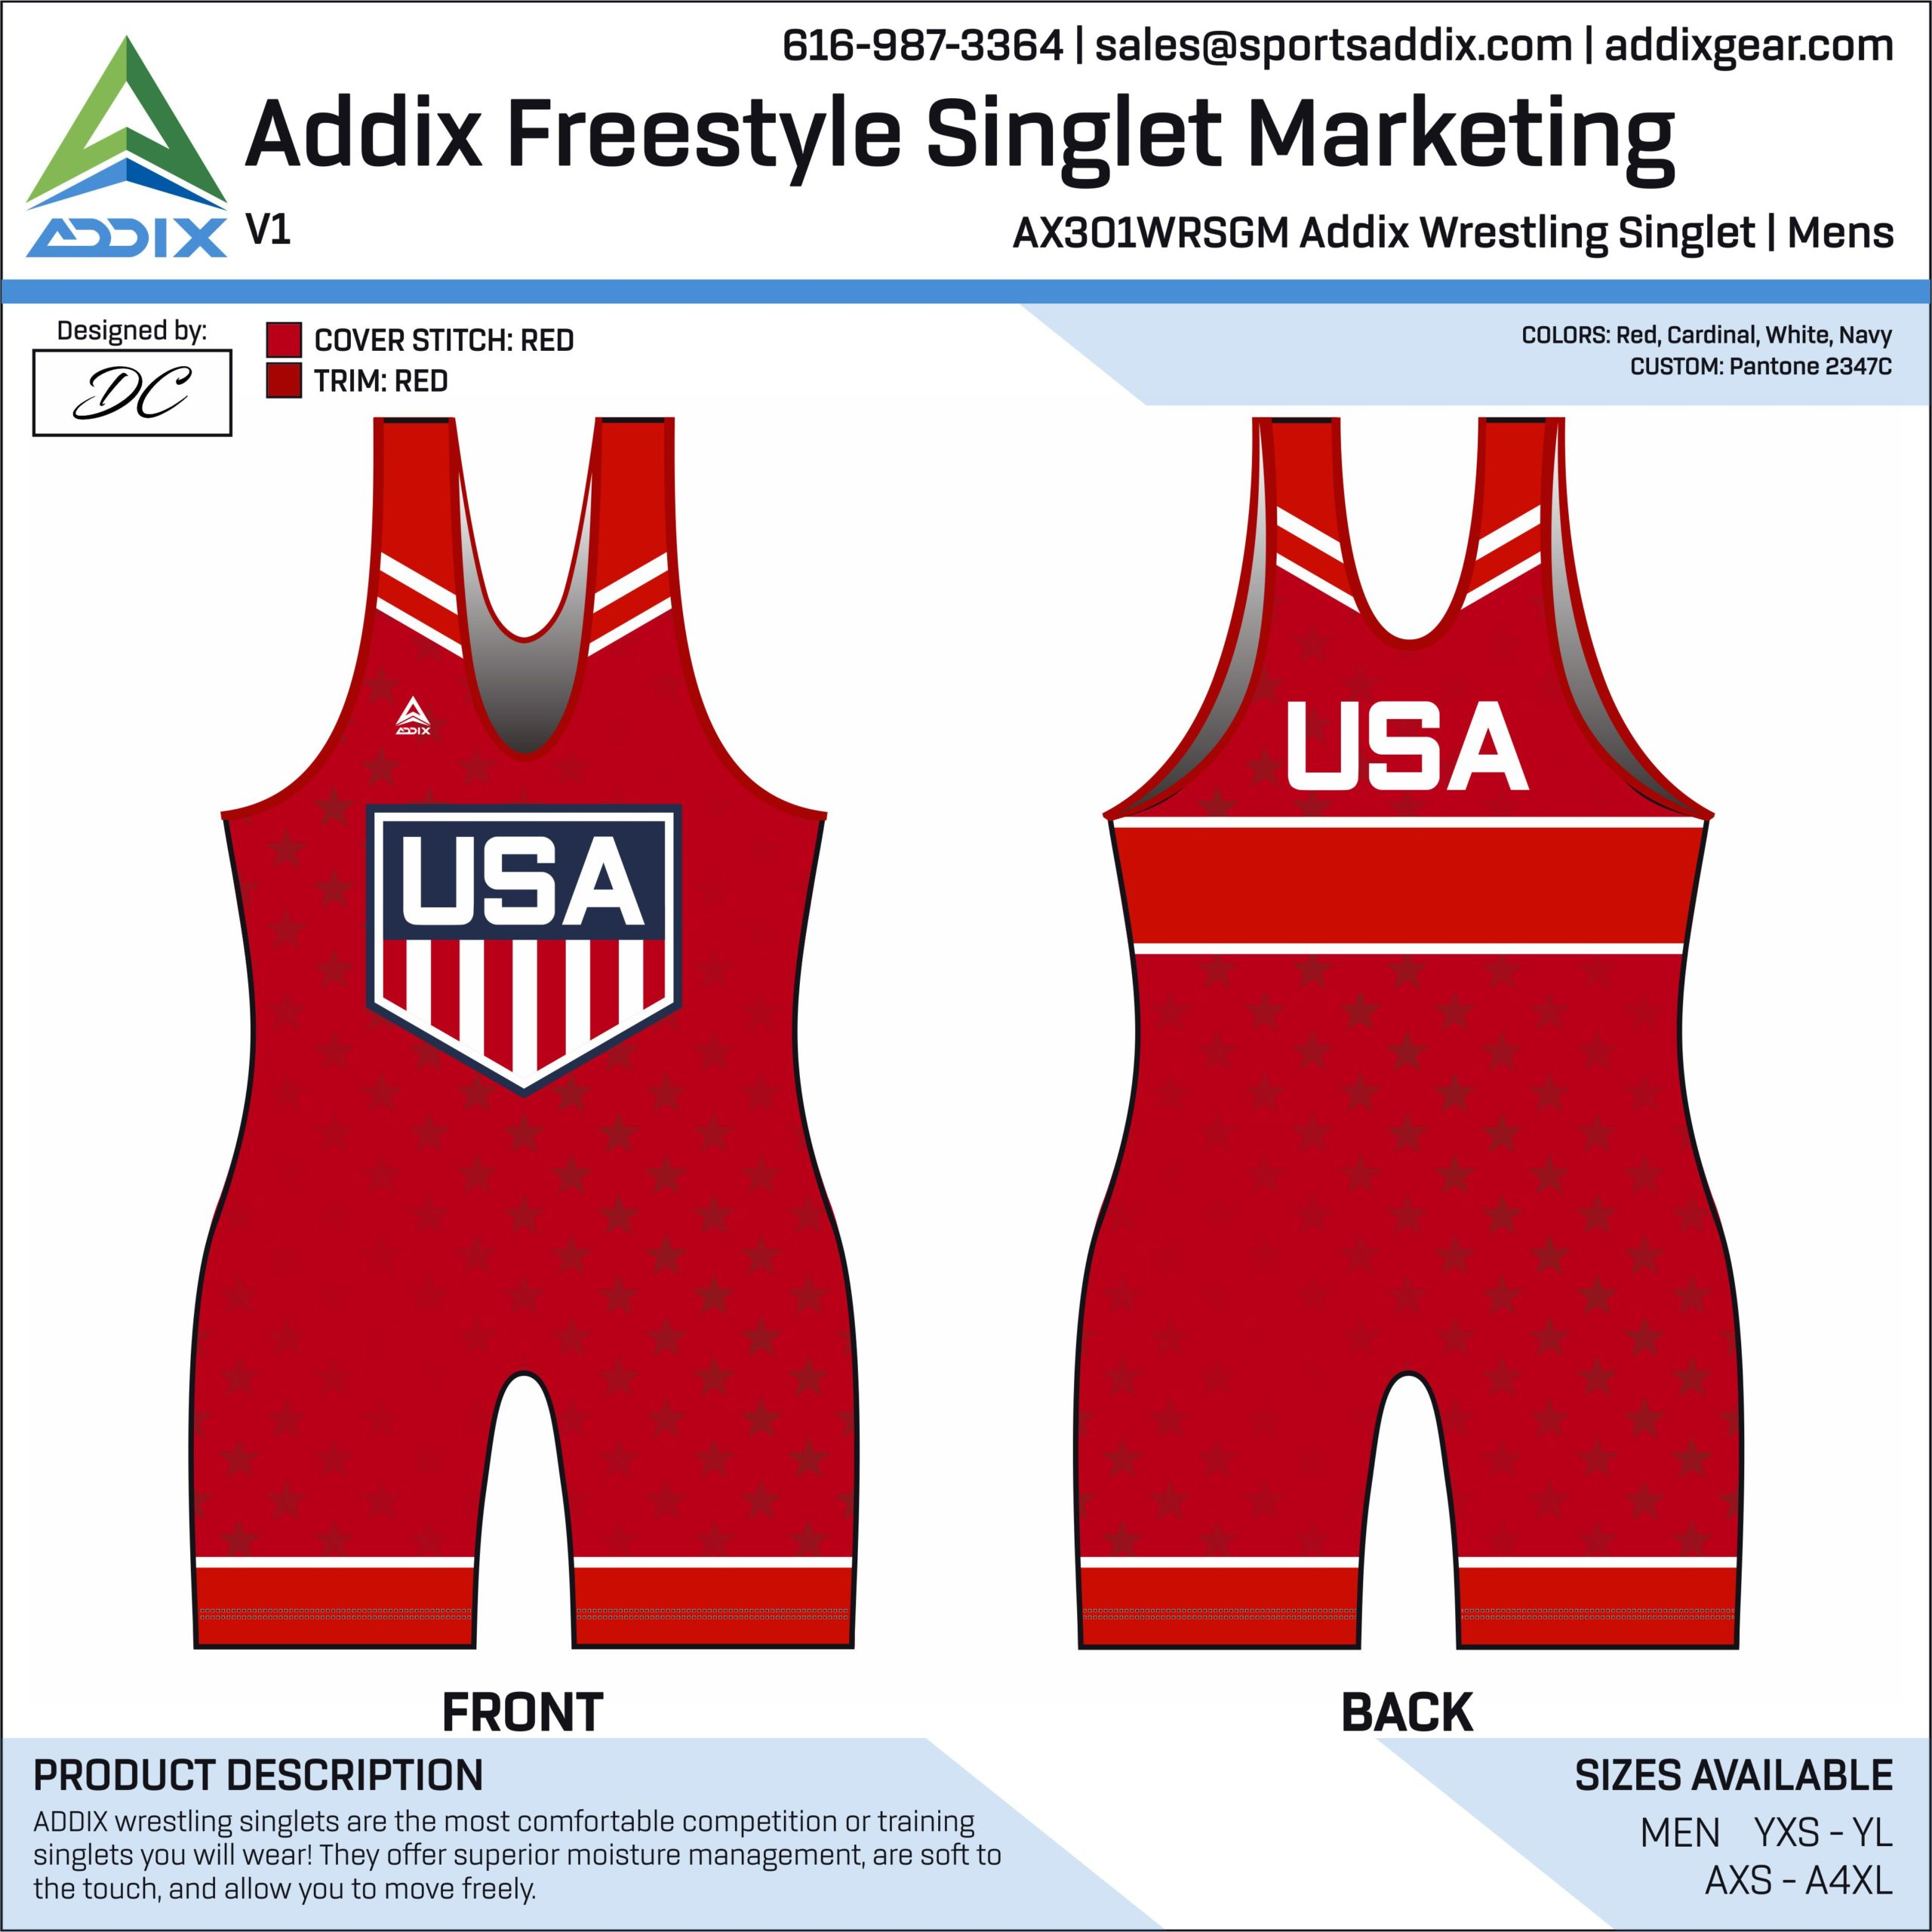 Addix Freestyle Wrestling Singlet